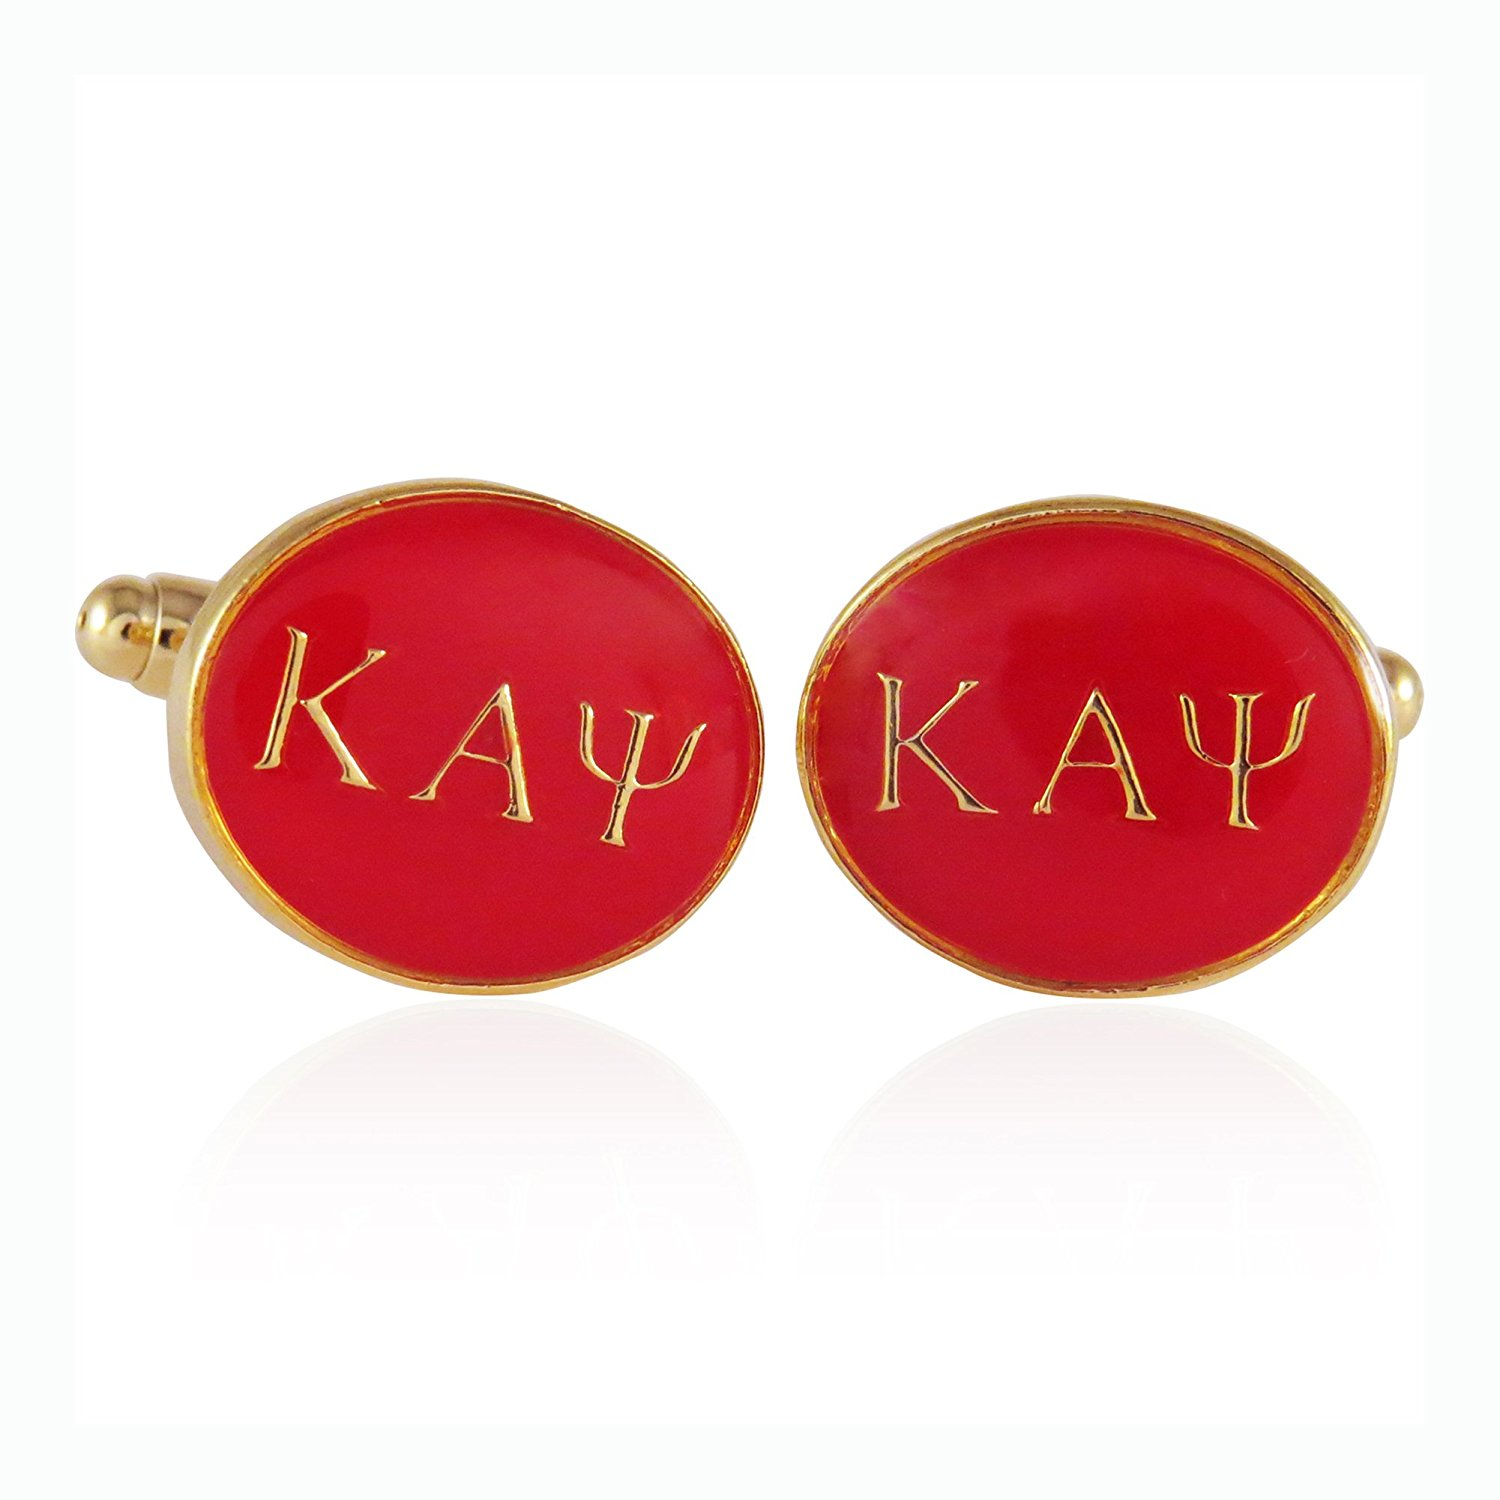 Kappa Alpha Psi Red Gold Cufflinks By Jewelry Mountain